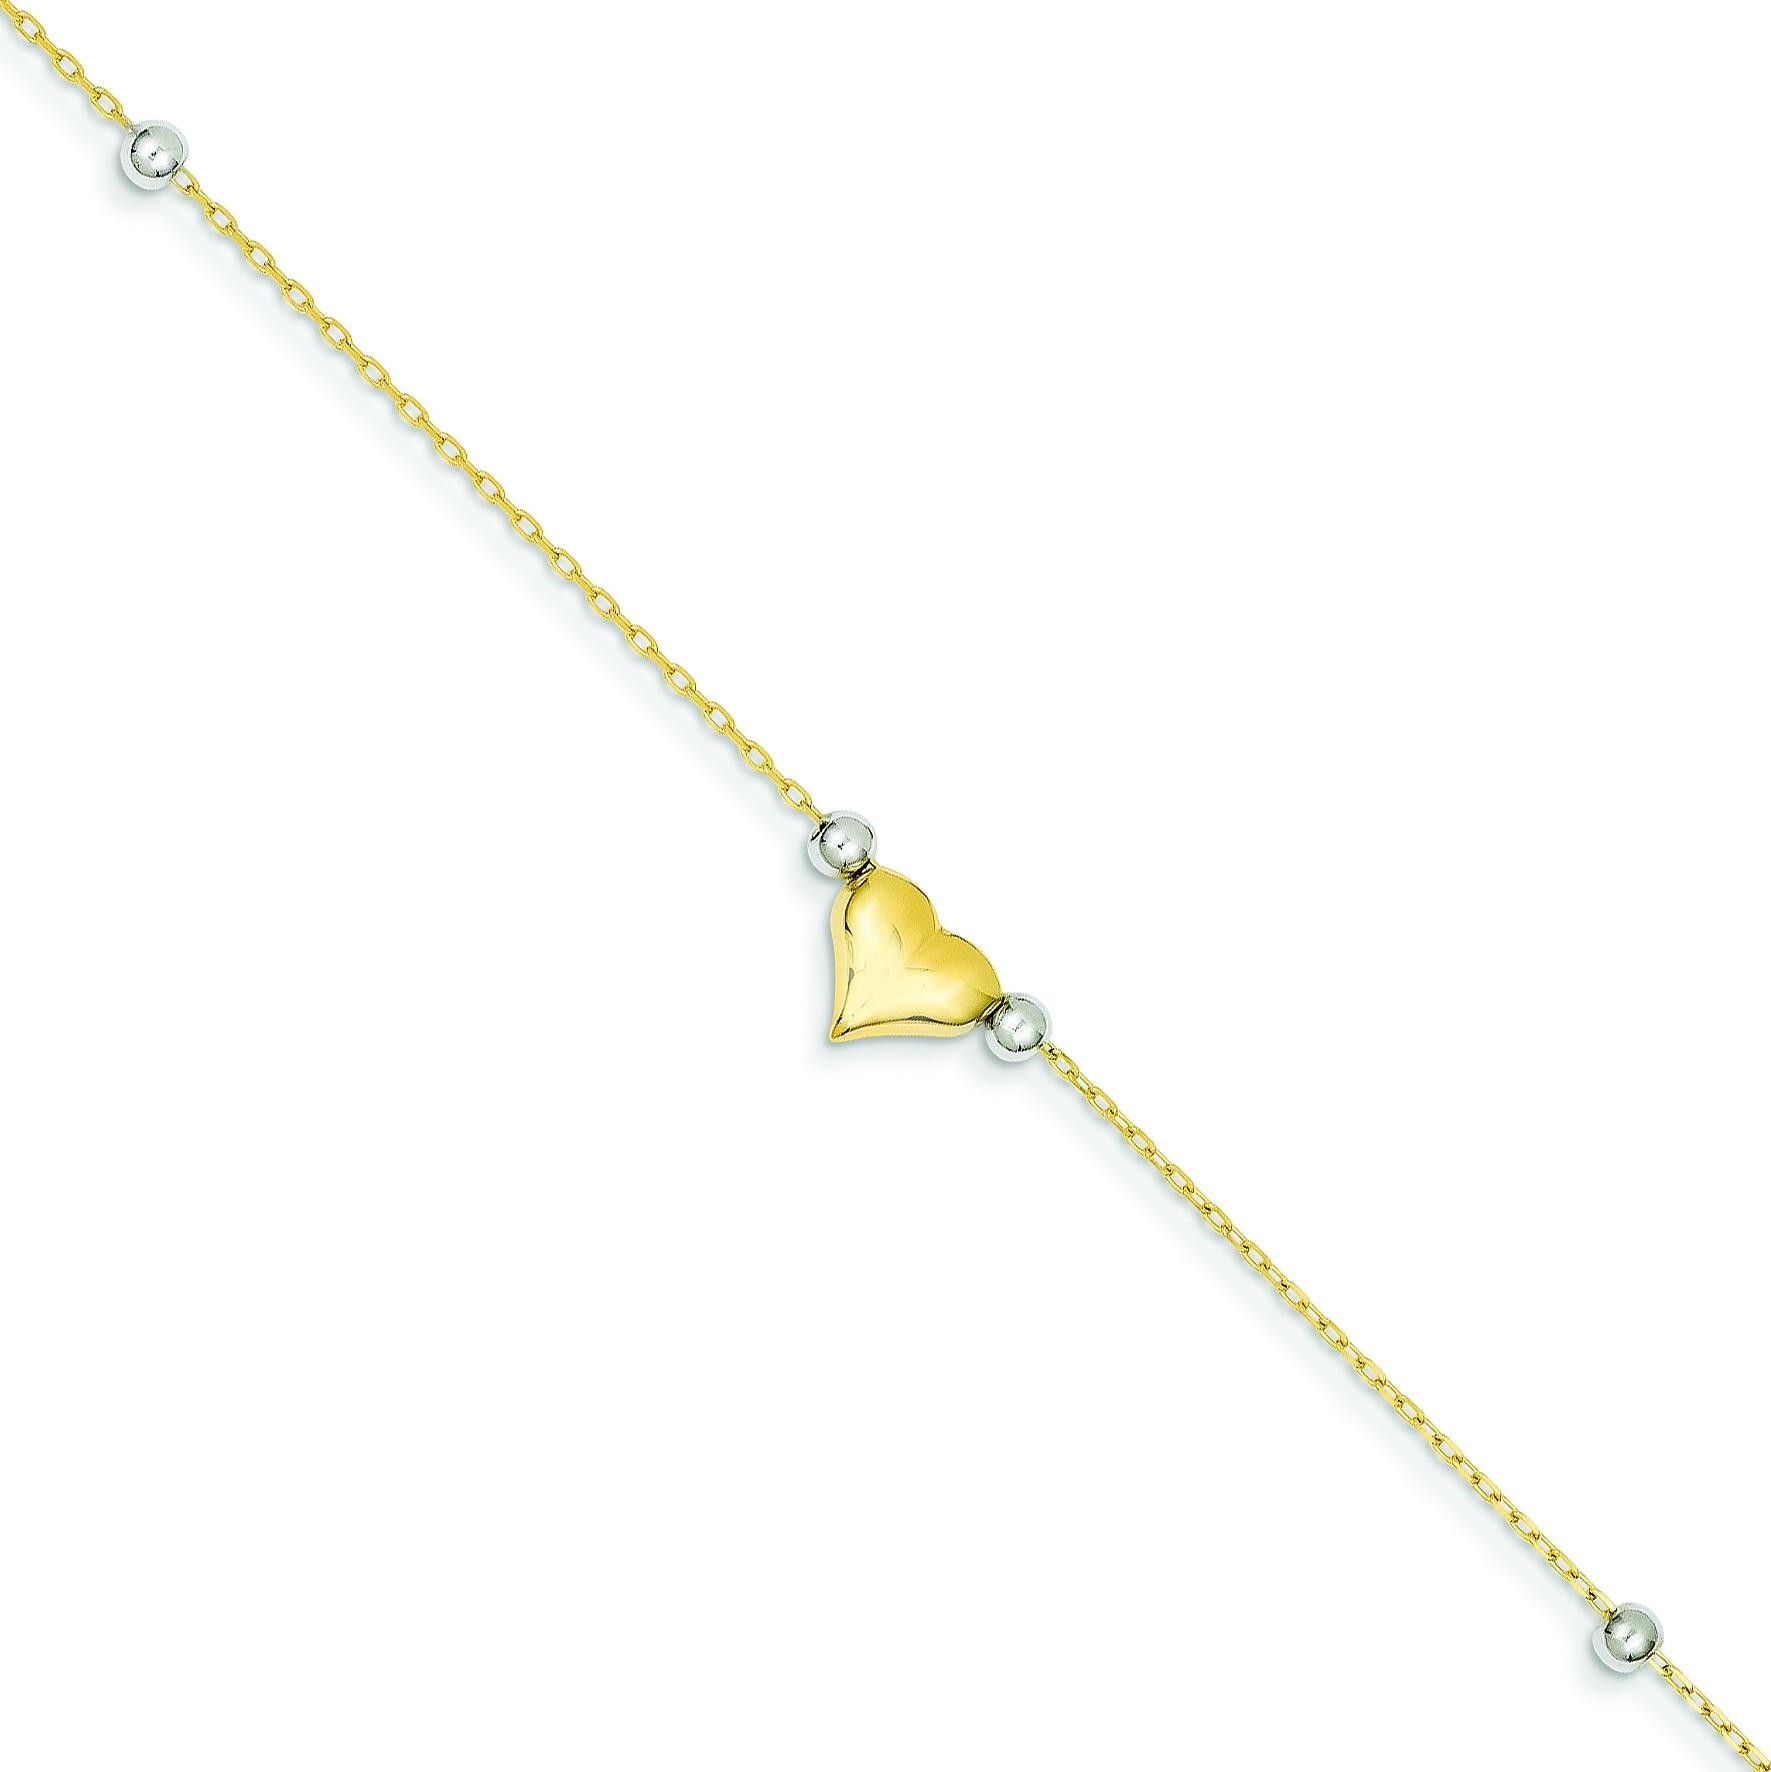 Puffed Heart Beads Anklet in 14k Two-tone Gold